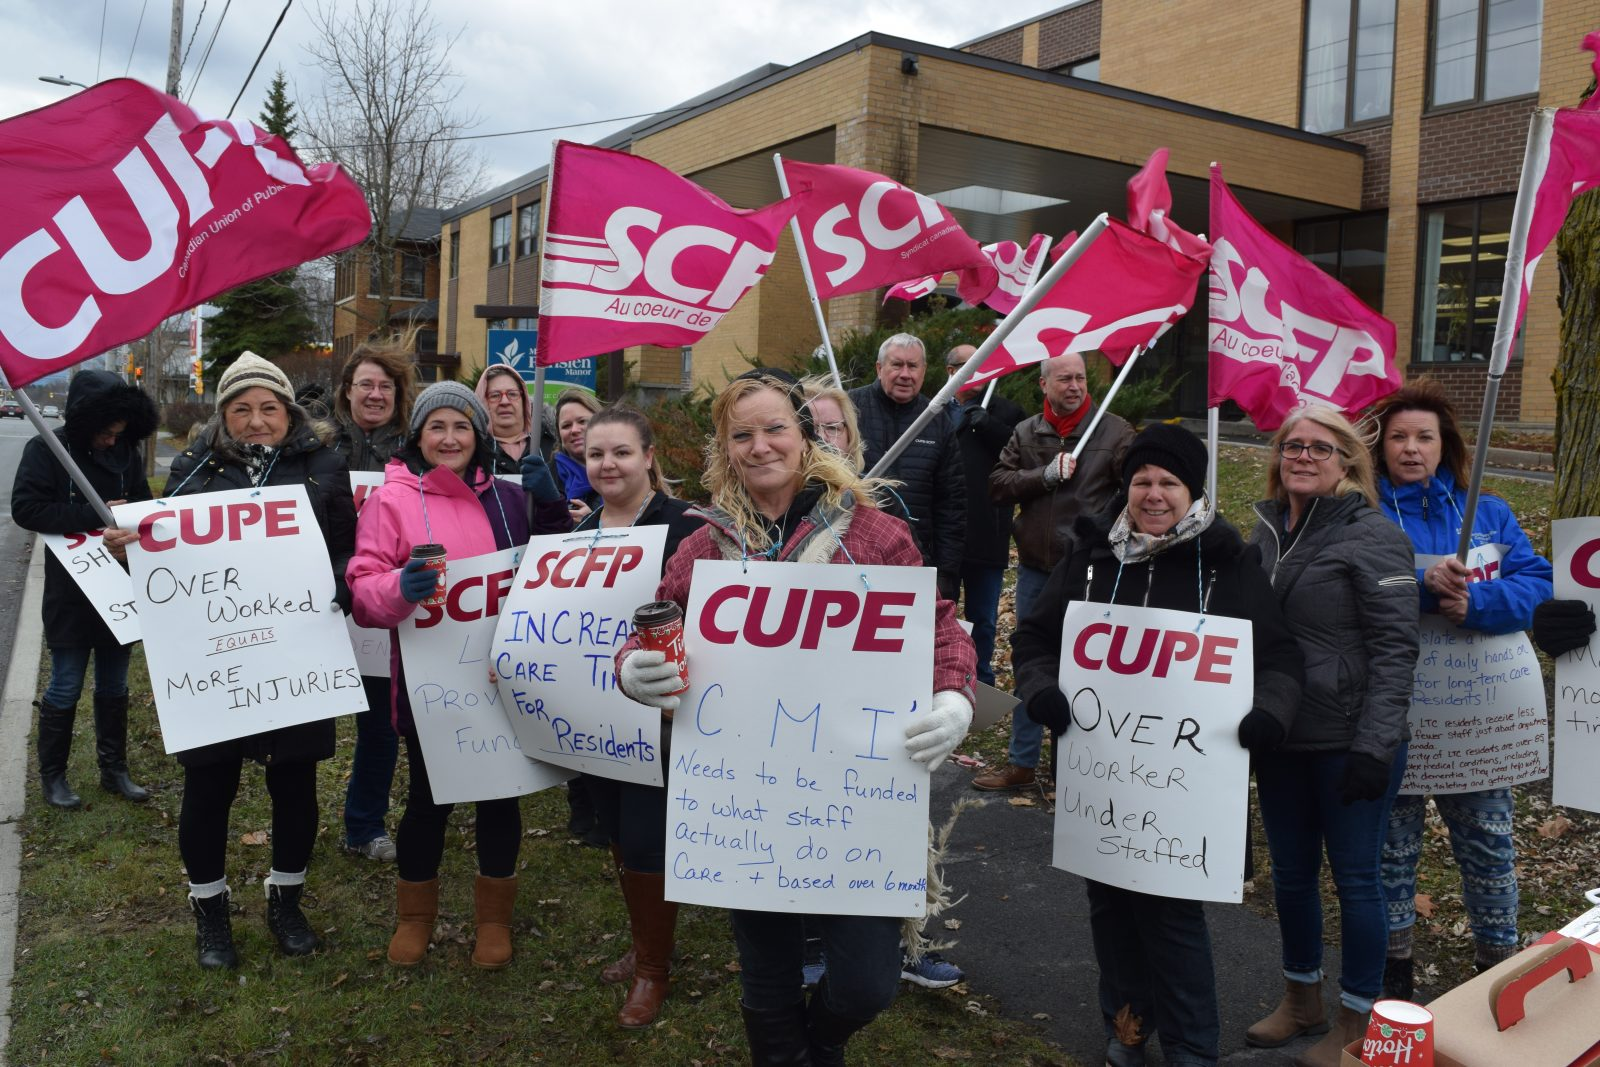 CUPE pickets at Parisien Manor for more support and resources